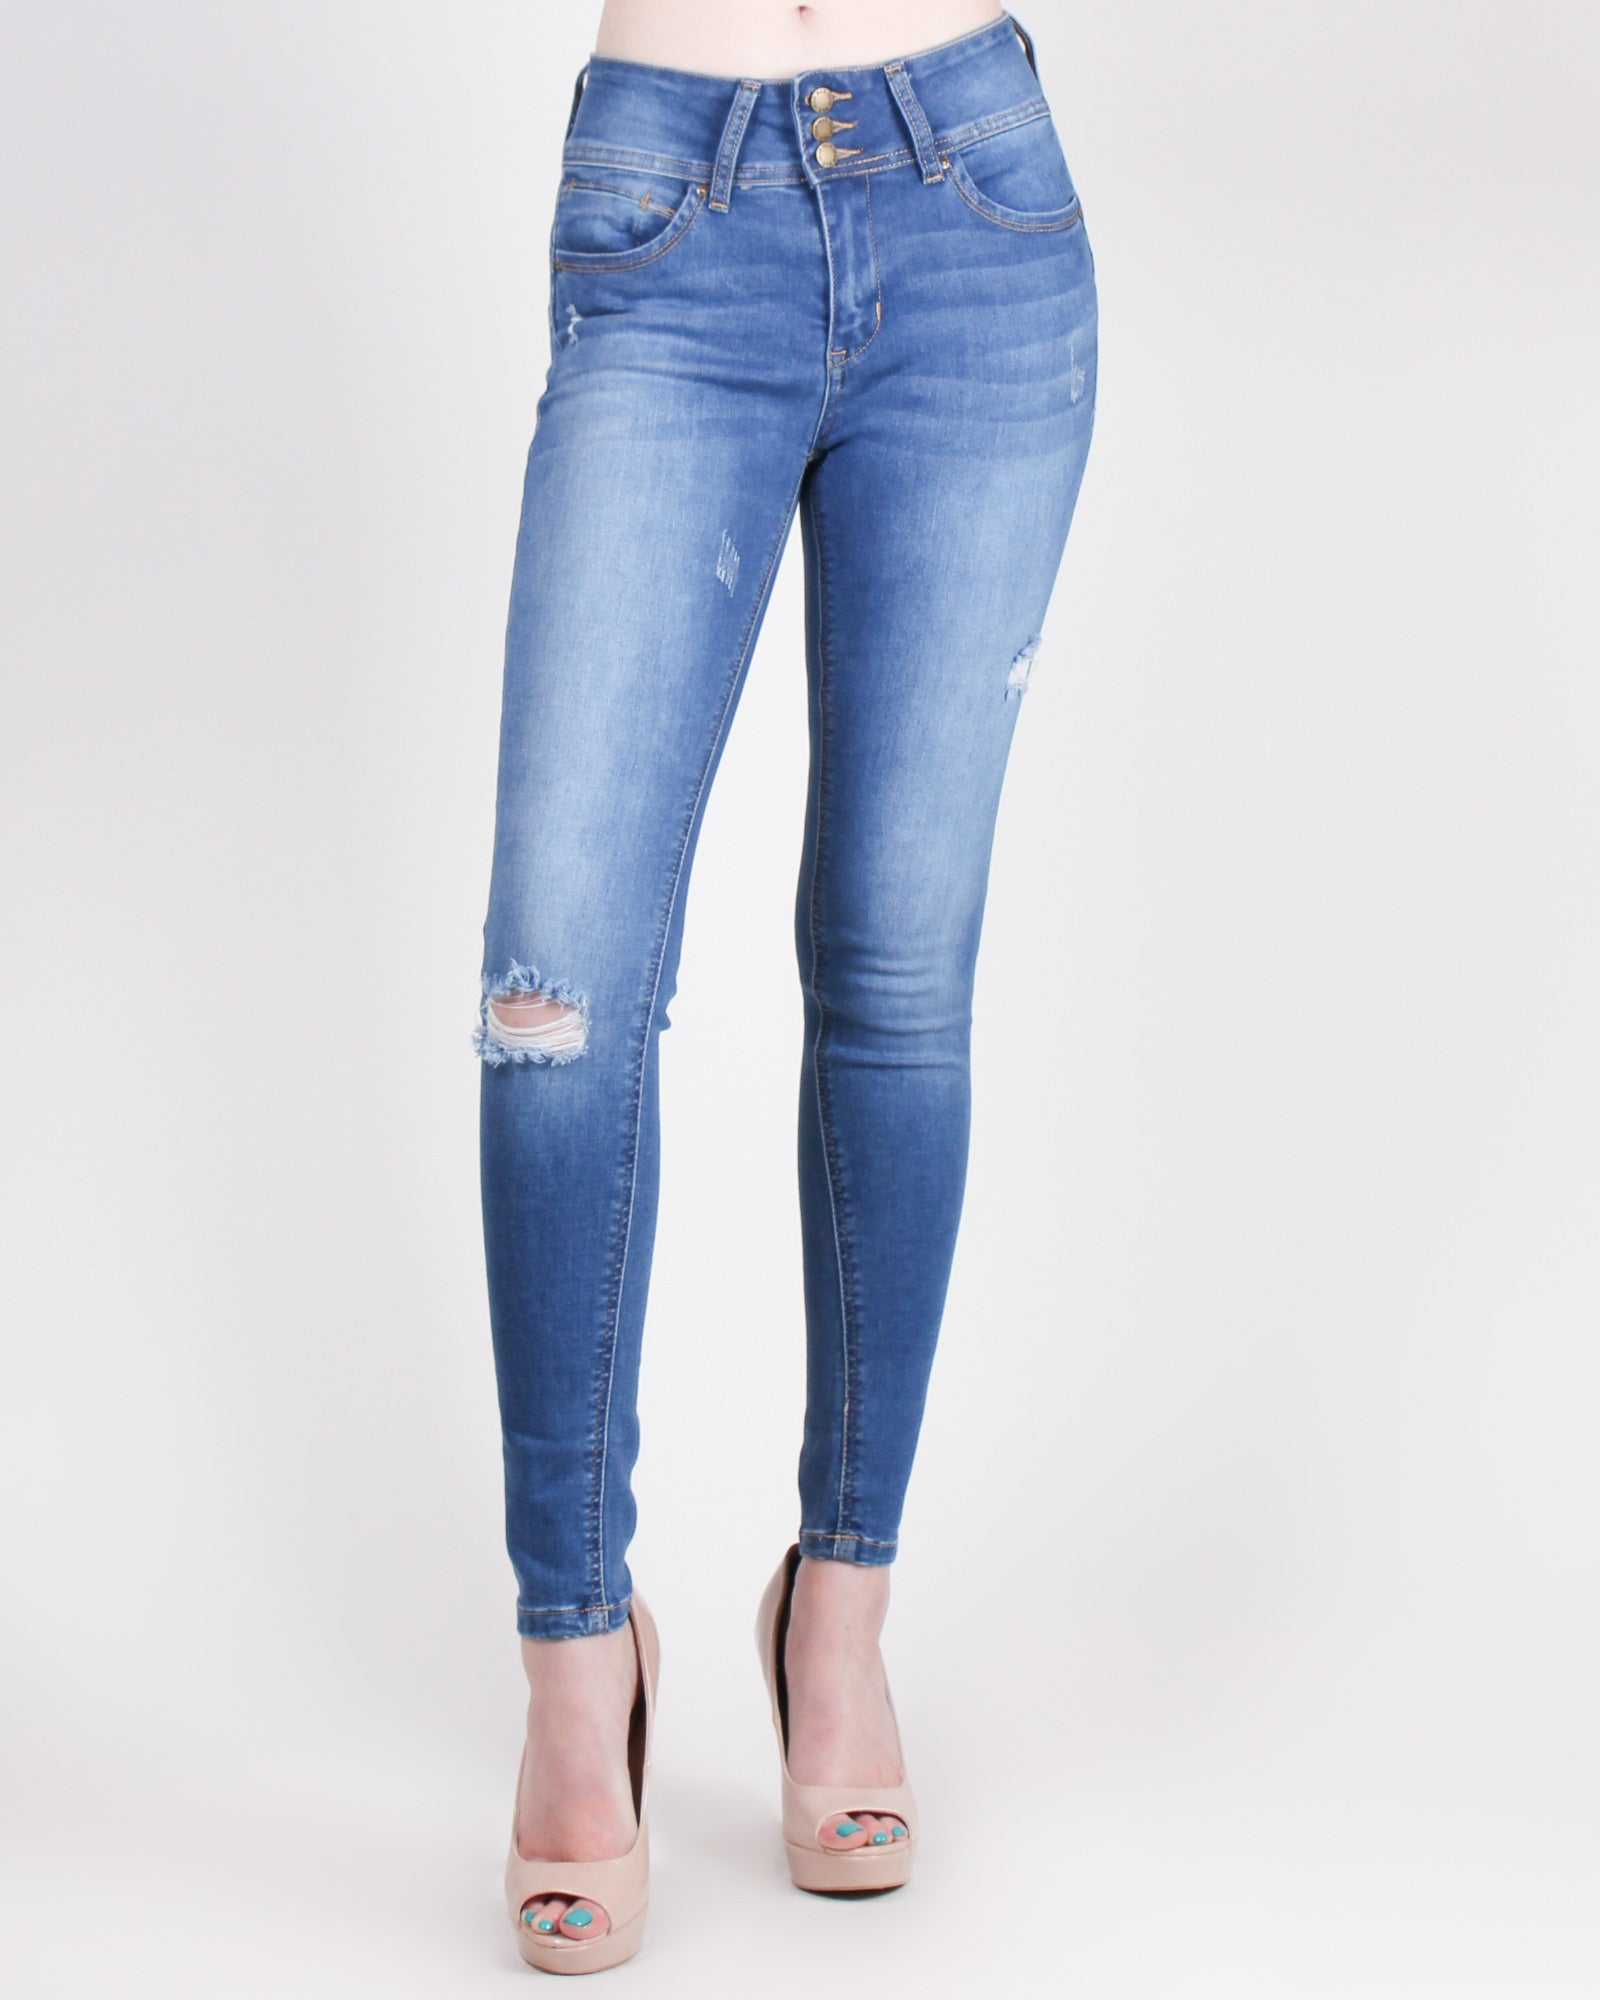 Fashion Q Shop Q Say Yes to New Adventures Skinny Jeans (Medium) 90156